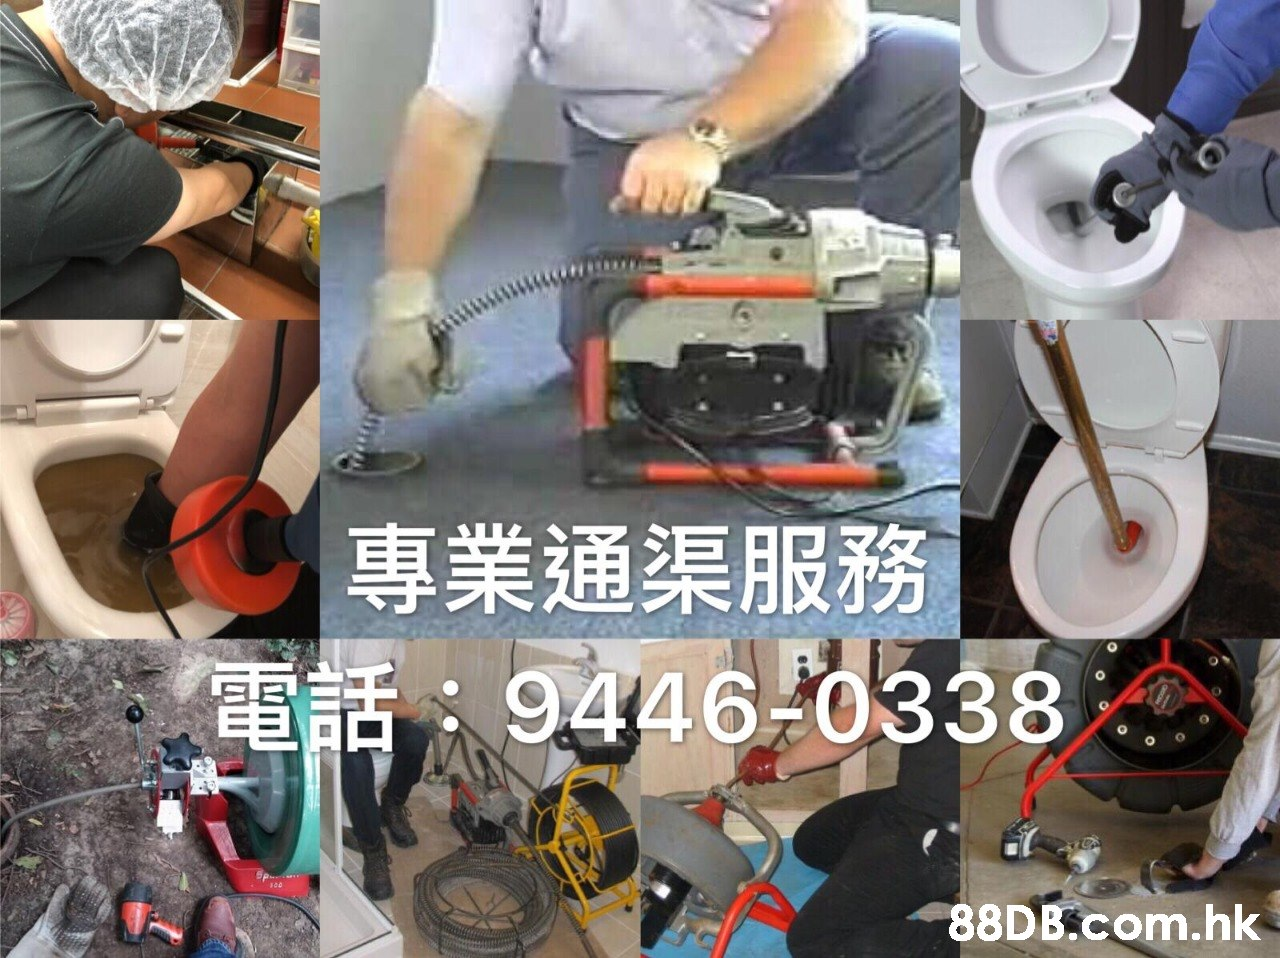 專業通渠服務 電話:9446-0338 Sp .hk  Machine,Leg,Cutting tool,Auto part,Circular saw